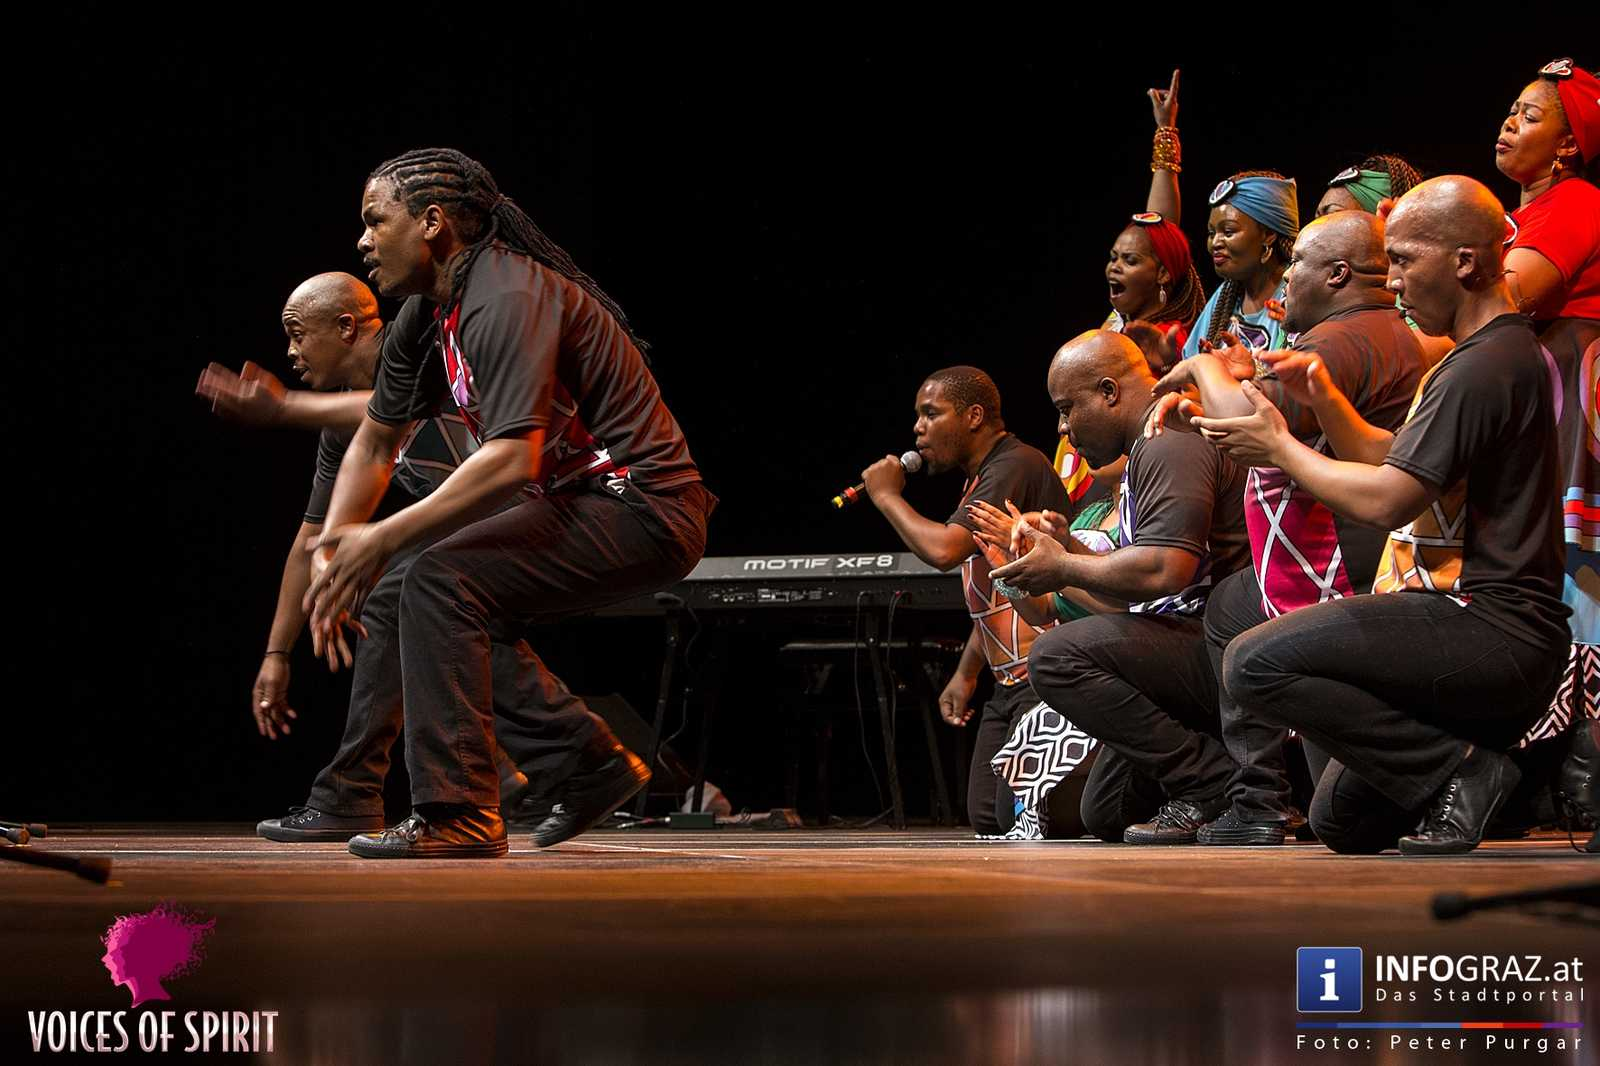 soweto gospel choir internationales chorfestival statdthalle graz voices of spirit eroeffnung festivals 2016 066